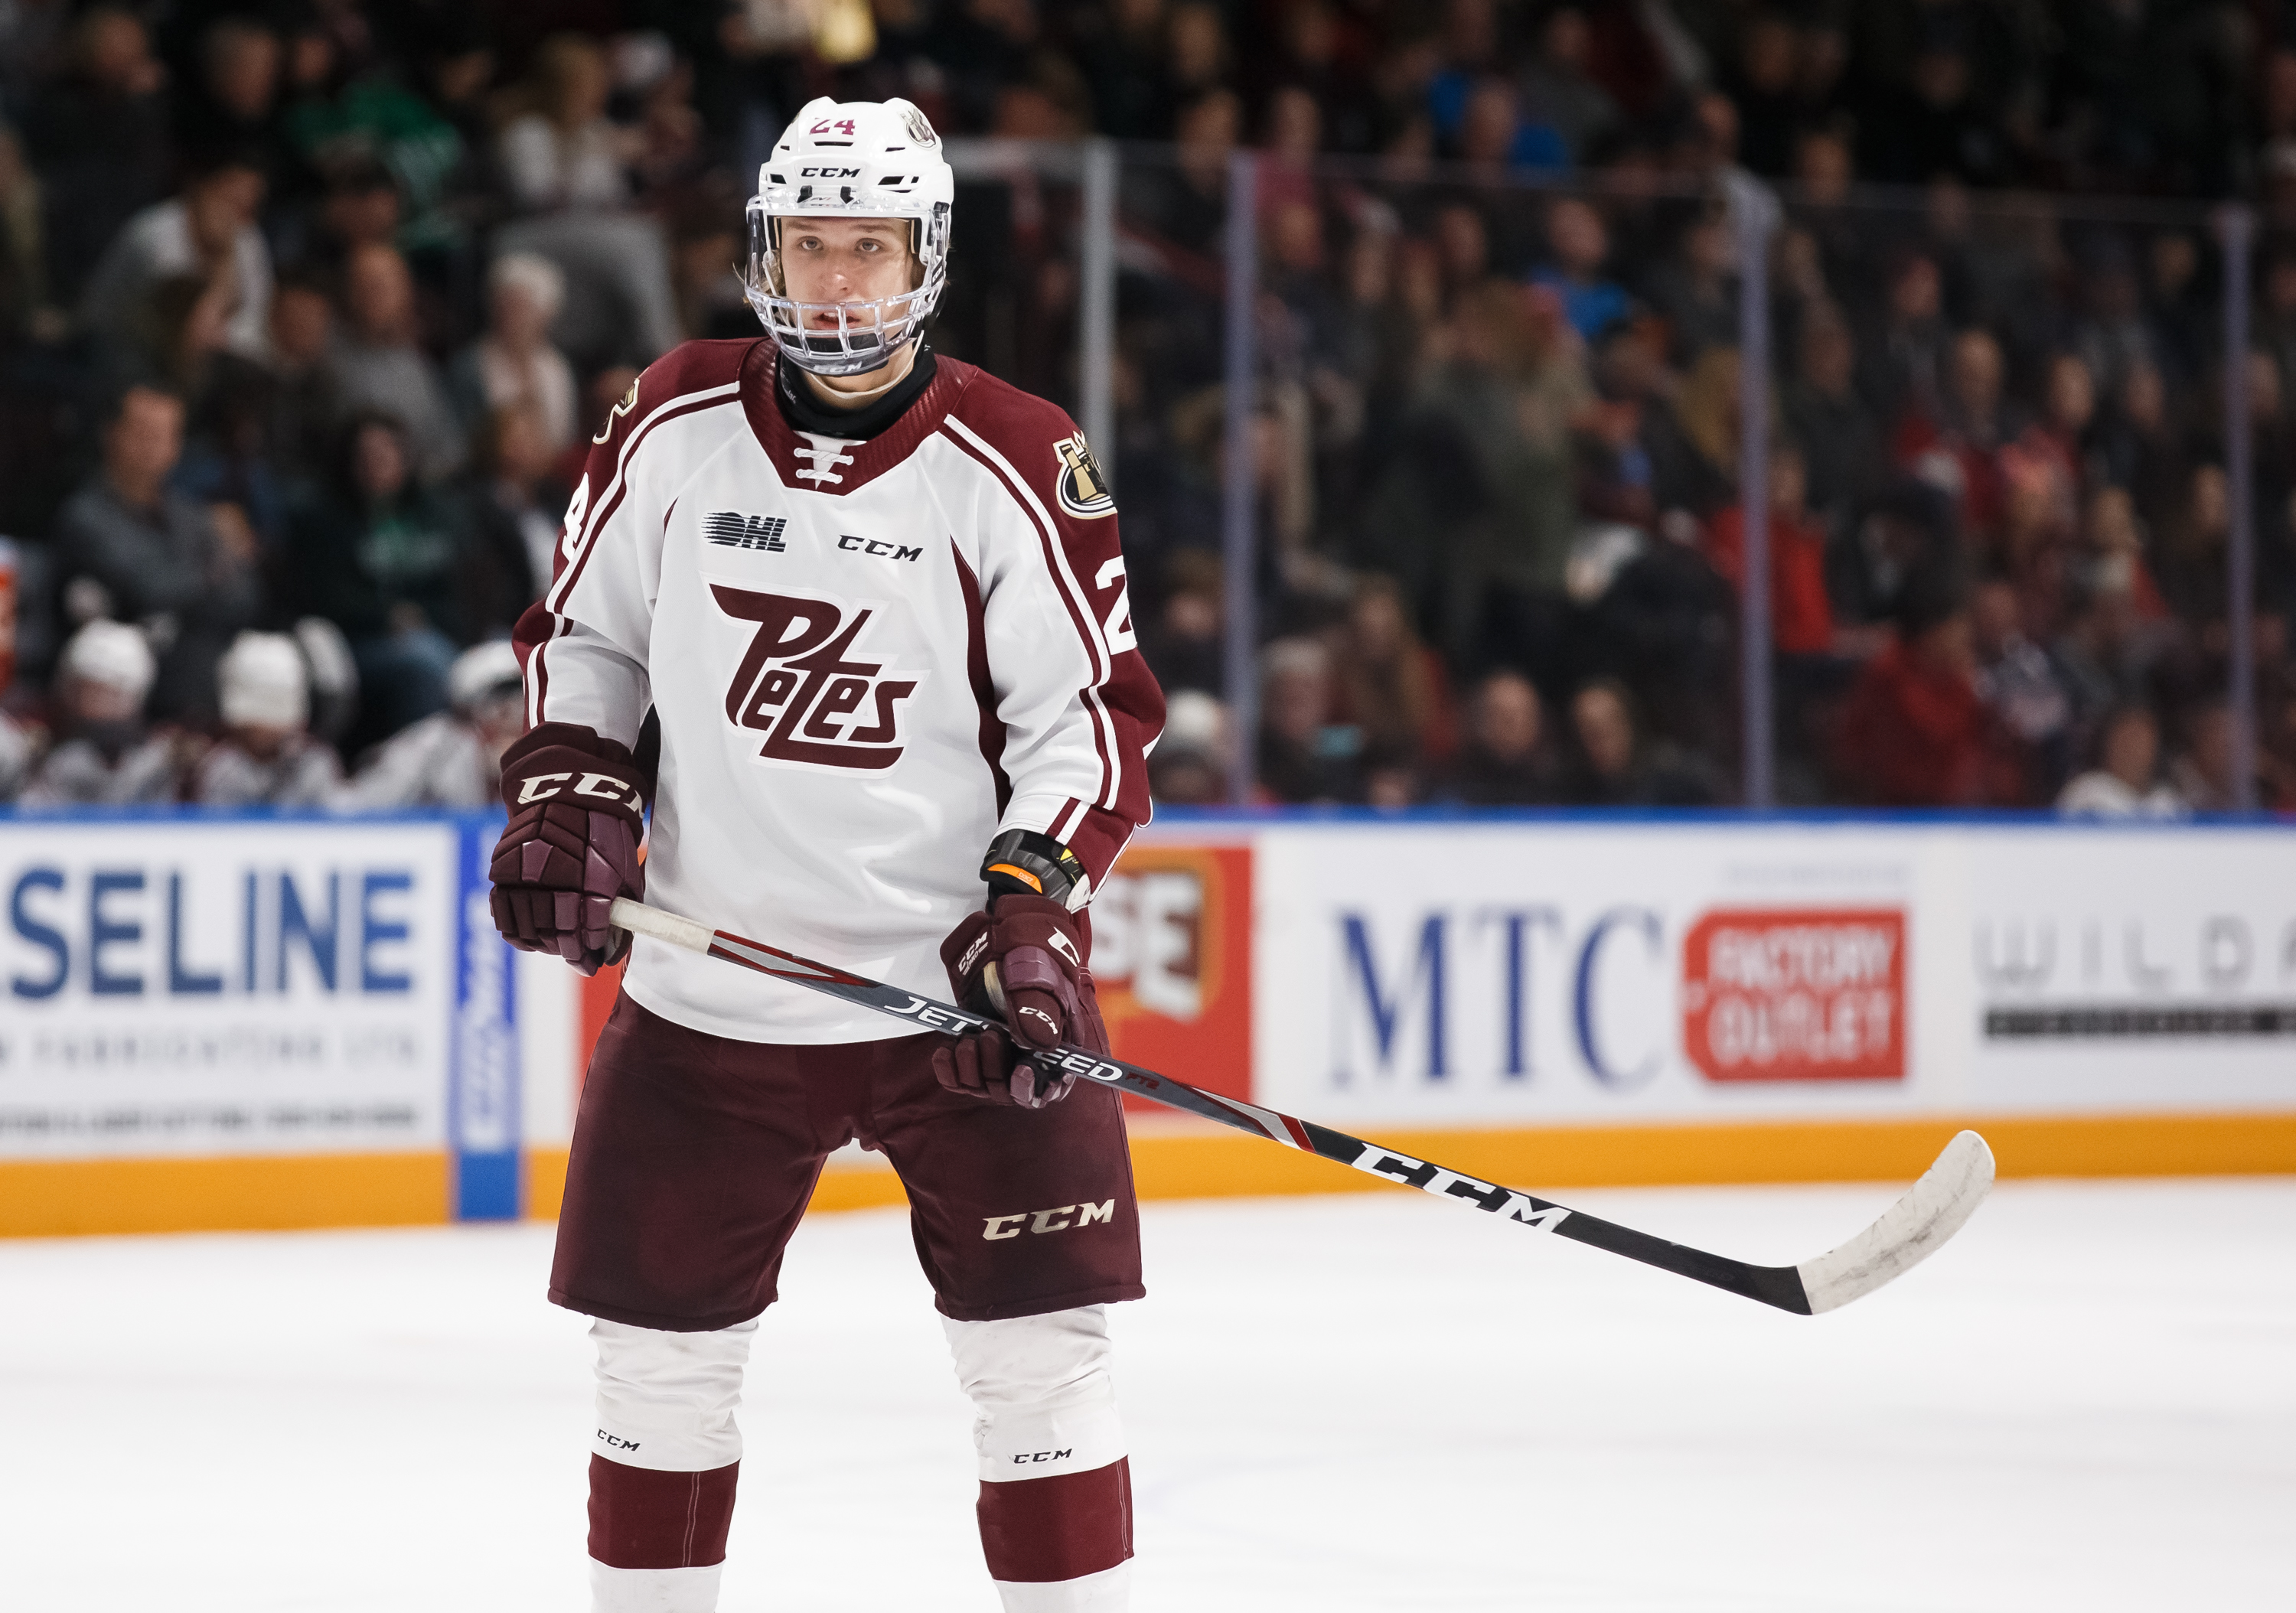 Artem Guryev #24 of the Peterborough Petes looks on before a face-off during an OHL game against the Oshawa Generals at the Tribute Communities Centre on January 31, 2020 in Oshawa, Ontario, Canada.